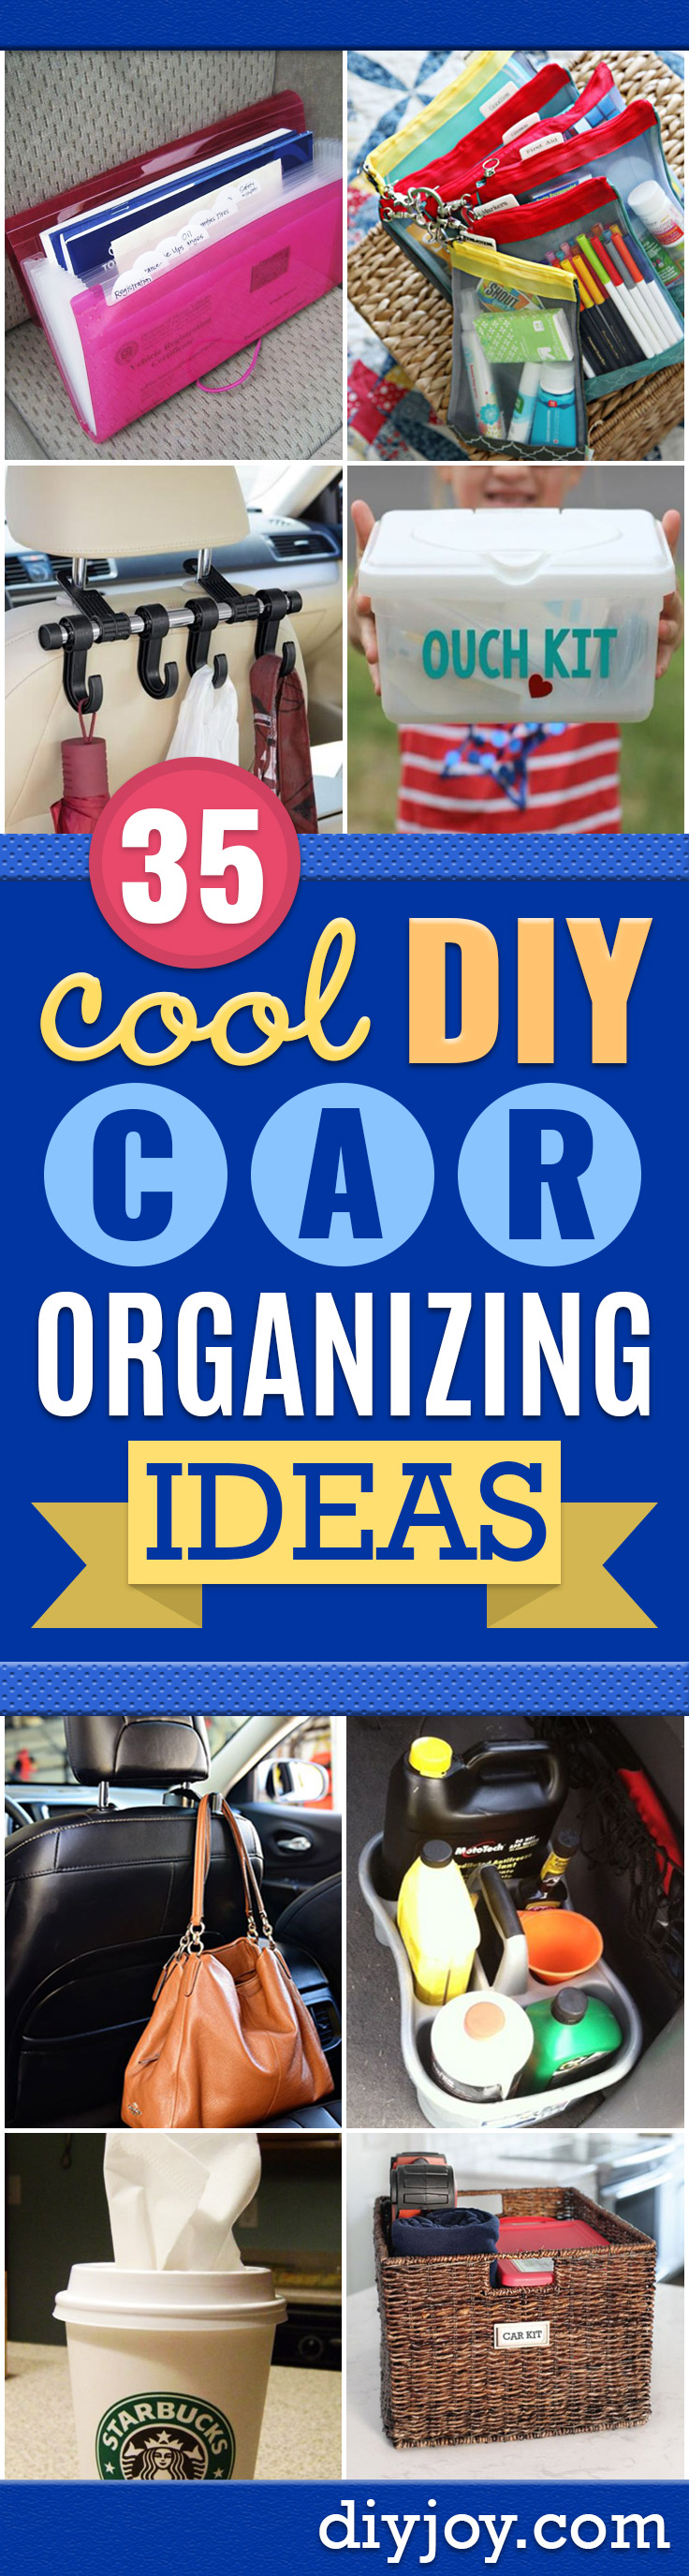 Car Organization Ideas - DIY Tips and Tricks for Organizing Cars - Dollar Store Storage Projects for Mom, Kids and Teens - Keep Your Car, Truck or SUV Clean On A Road Trip With These solutions for interiors and Trunk, Front Seat - Do It Yourself Caddy and Easy, Cool Lifehacks